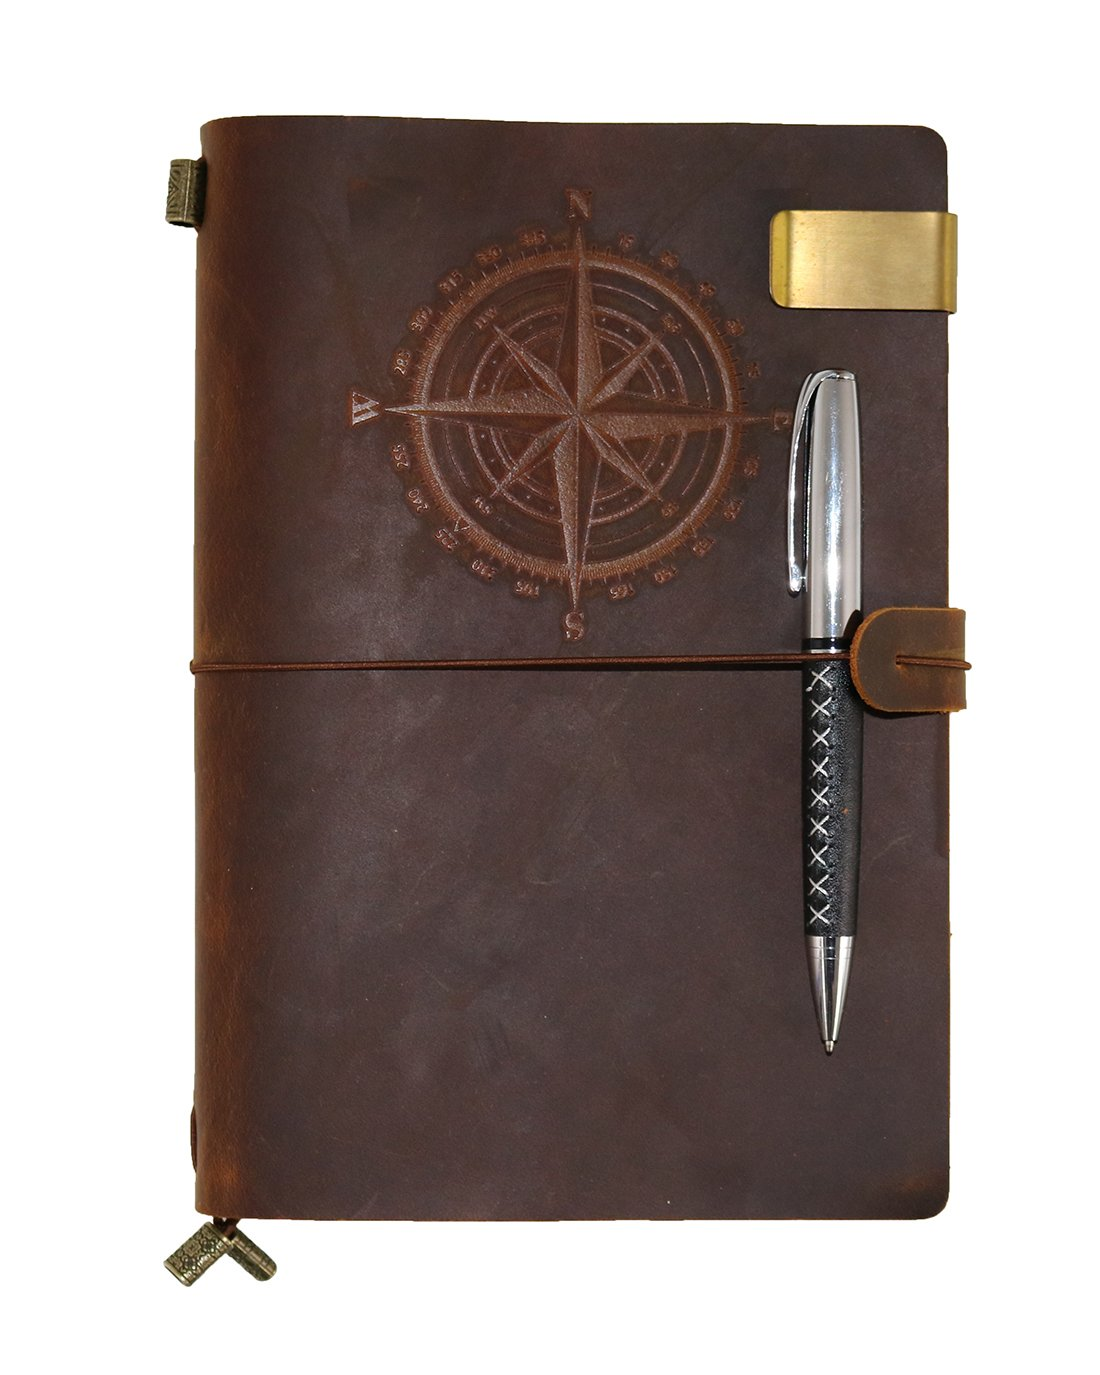 Leather Notebook Classic Compass Travelers Notebook Journal Refillable, Gift for Men & Women A5 Vintage Genuine Leather Notebook With For Writing, Perfect to write in,Travel Diary With Ballpoint Pen